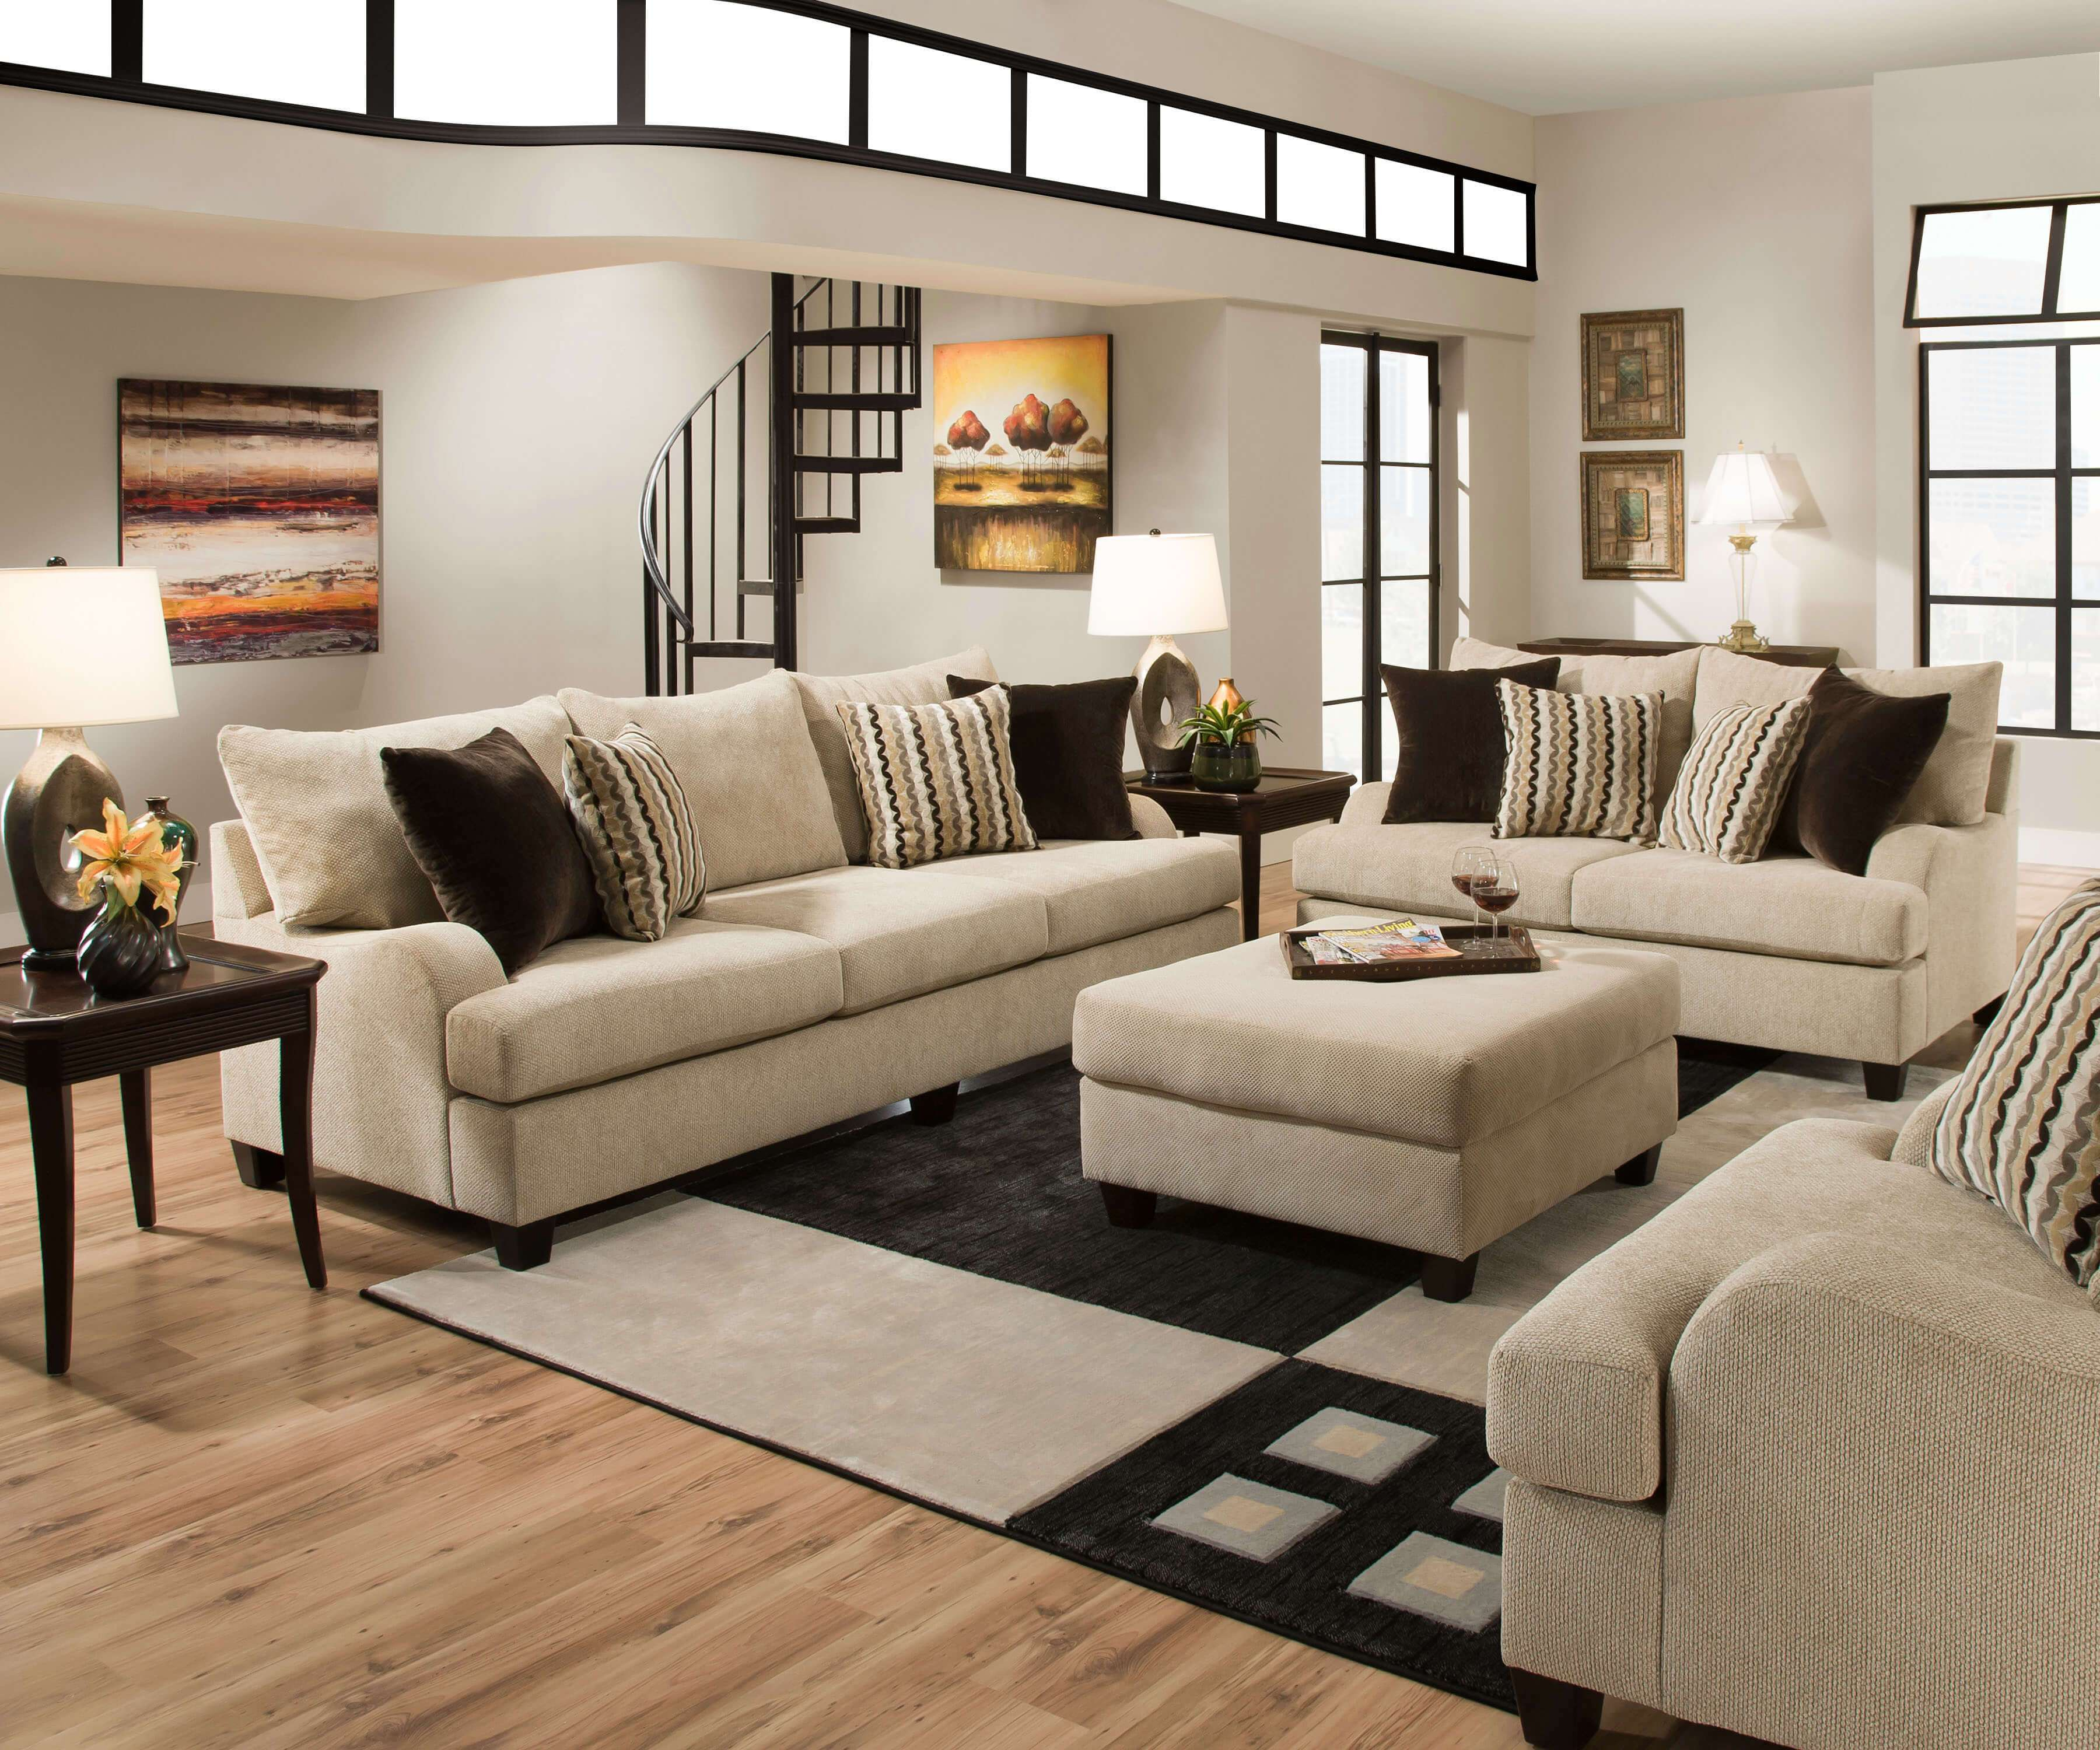 Living Room Sets For Sale Ashley Furniture Living Room Sets On for 13 Awesome Ways How to Build Living Room Set Sale